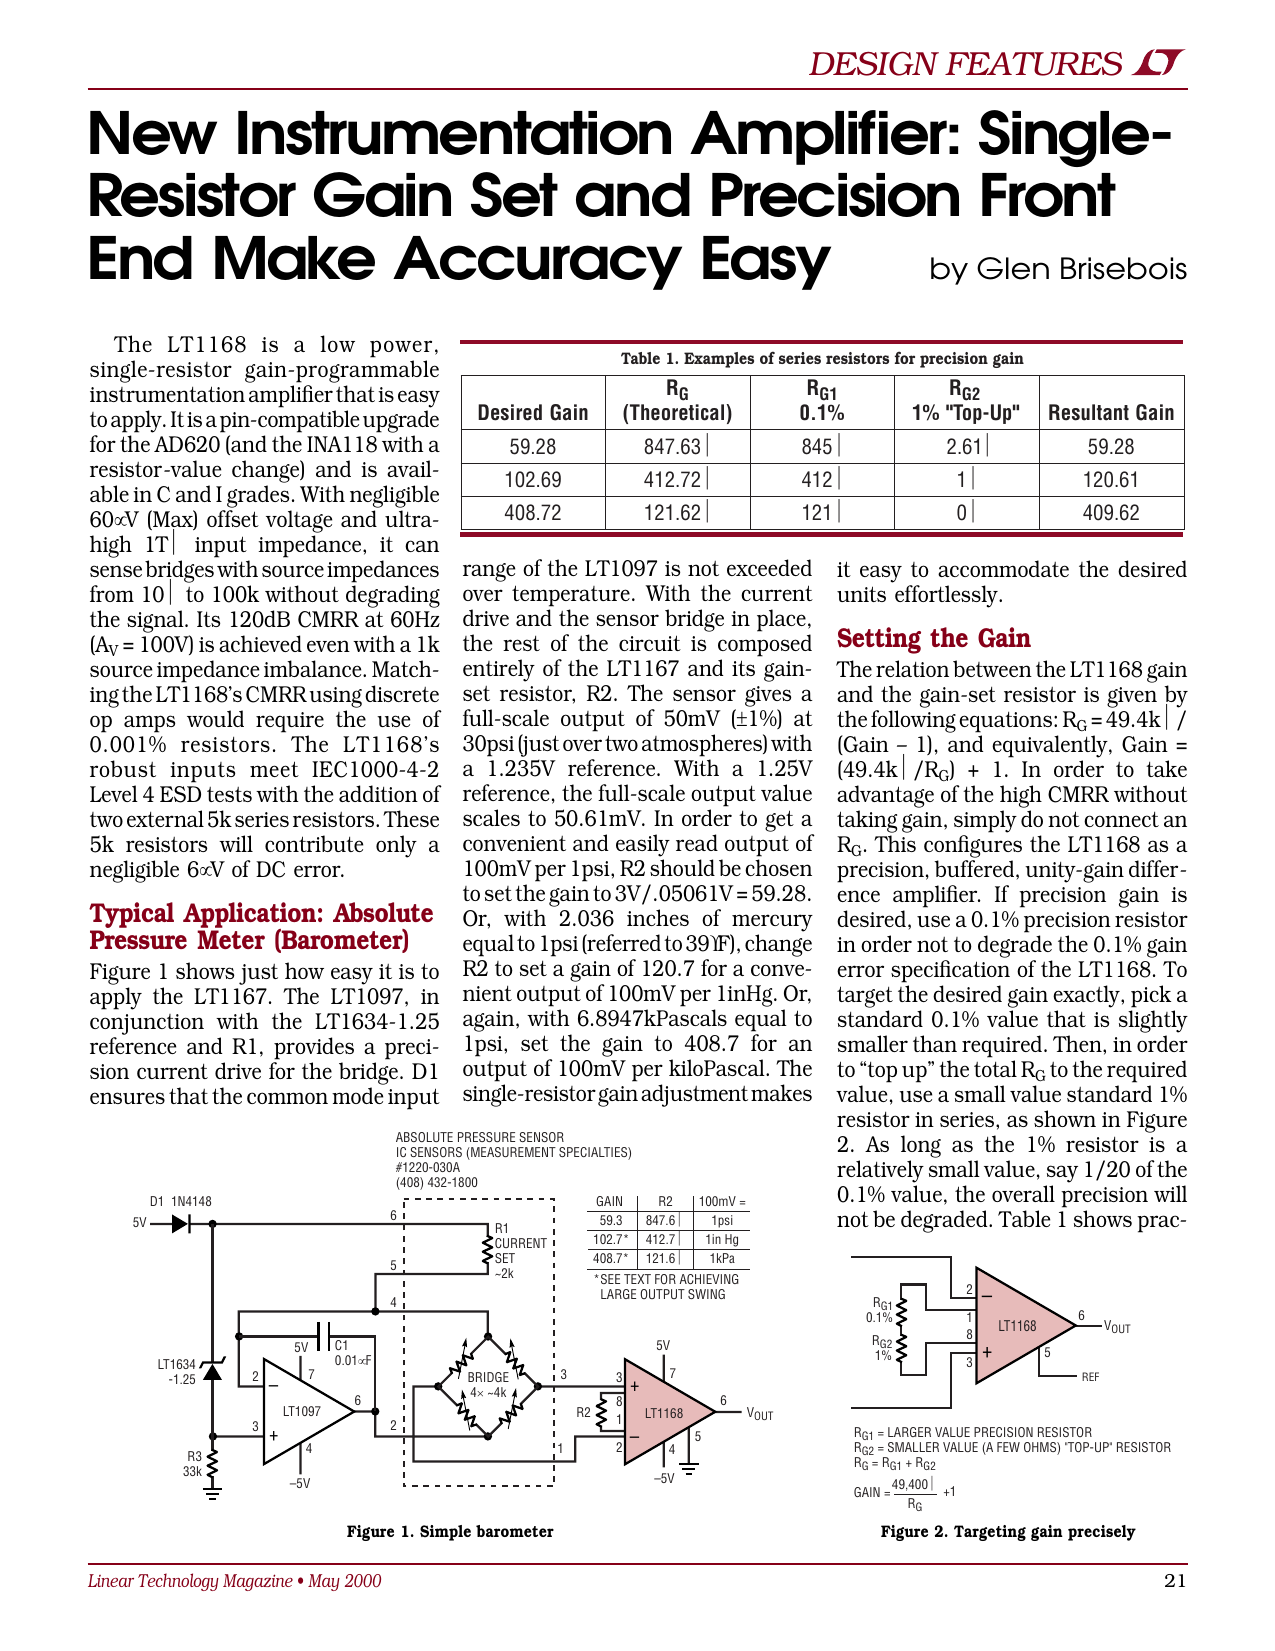 Single Resistor Gain Set And Precision Front End Make Accuracy Instrumentation Amplifier With Cmrr Calibration